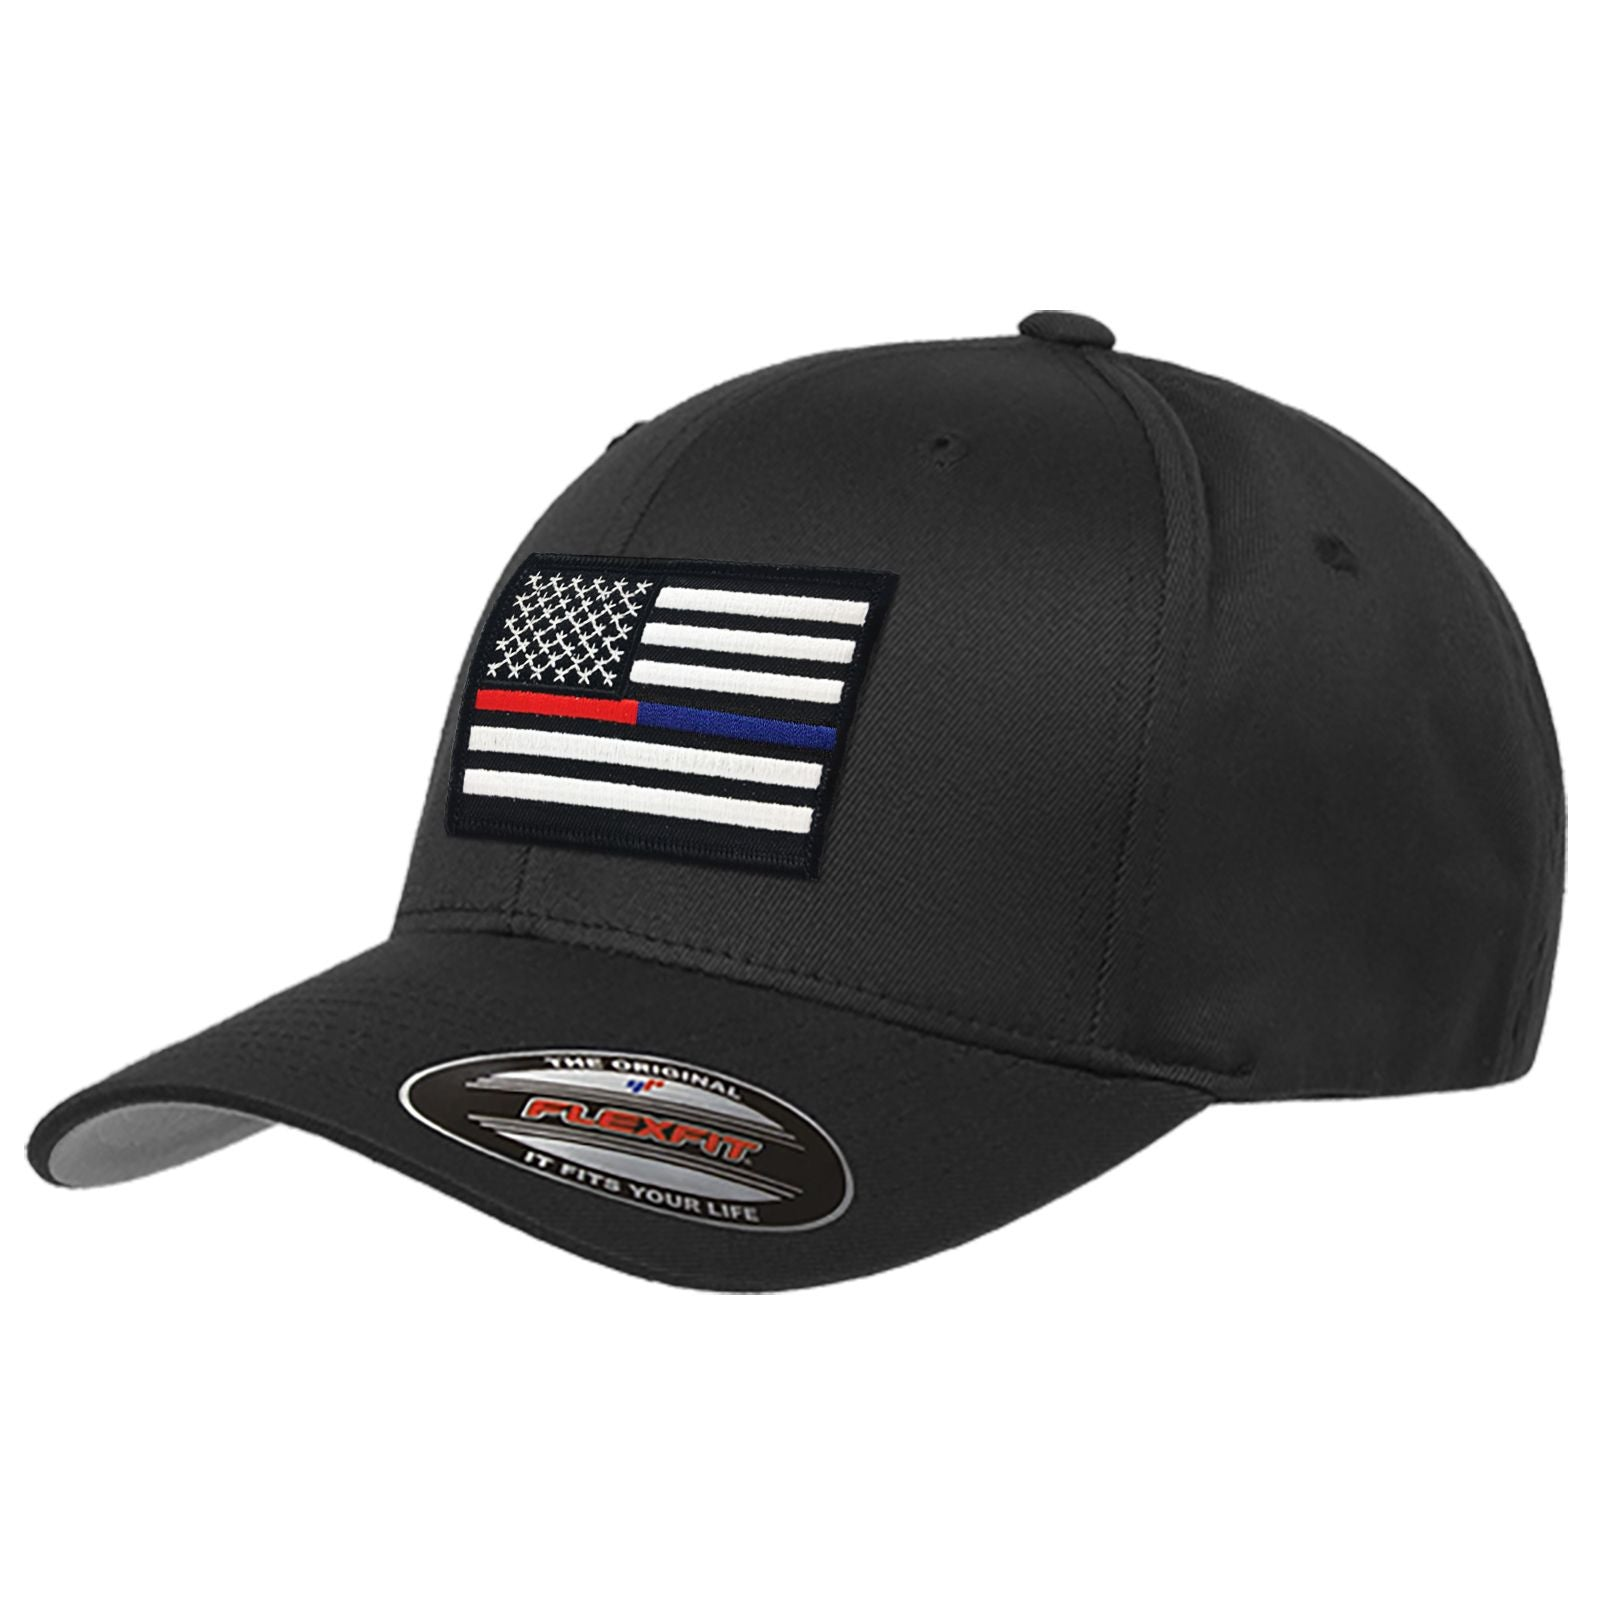 Thin Blue Line Headwear | Thin Blue Line USA